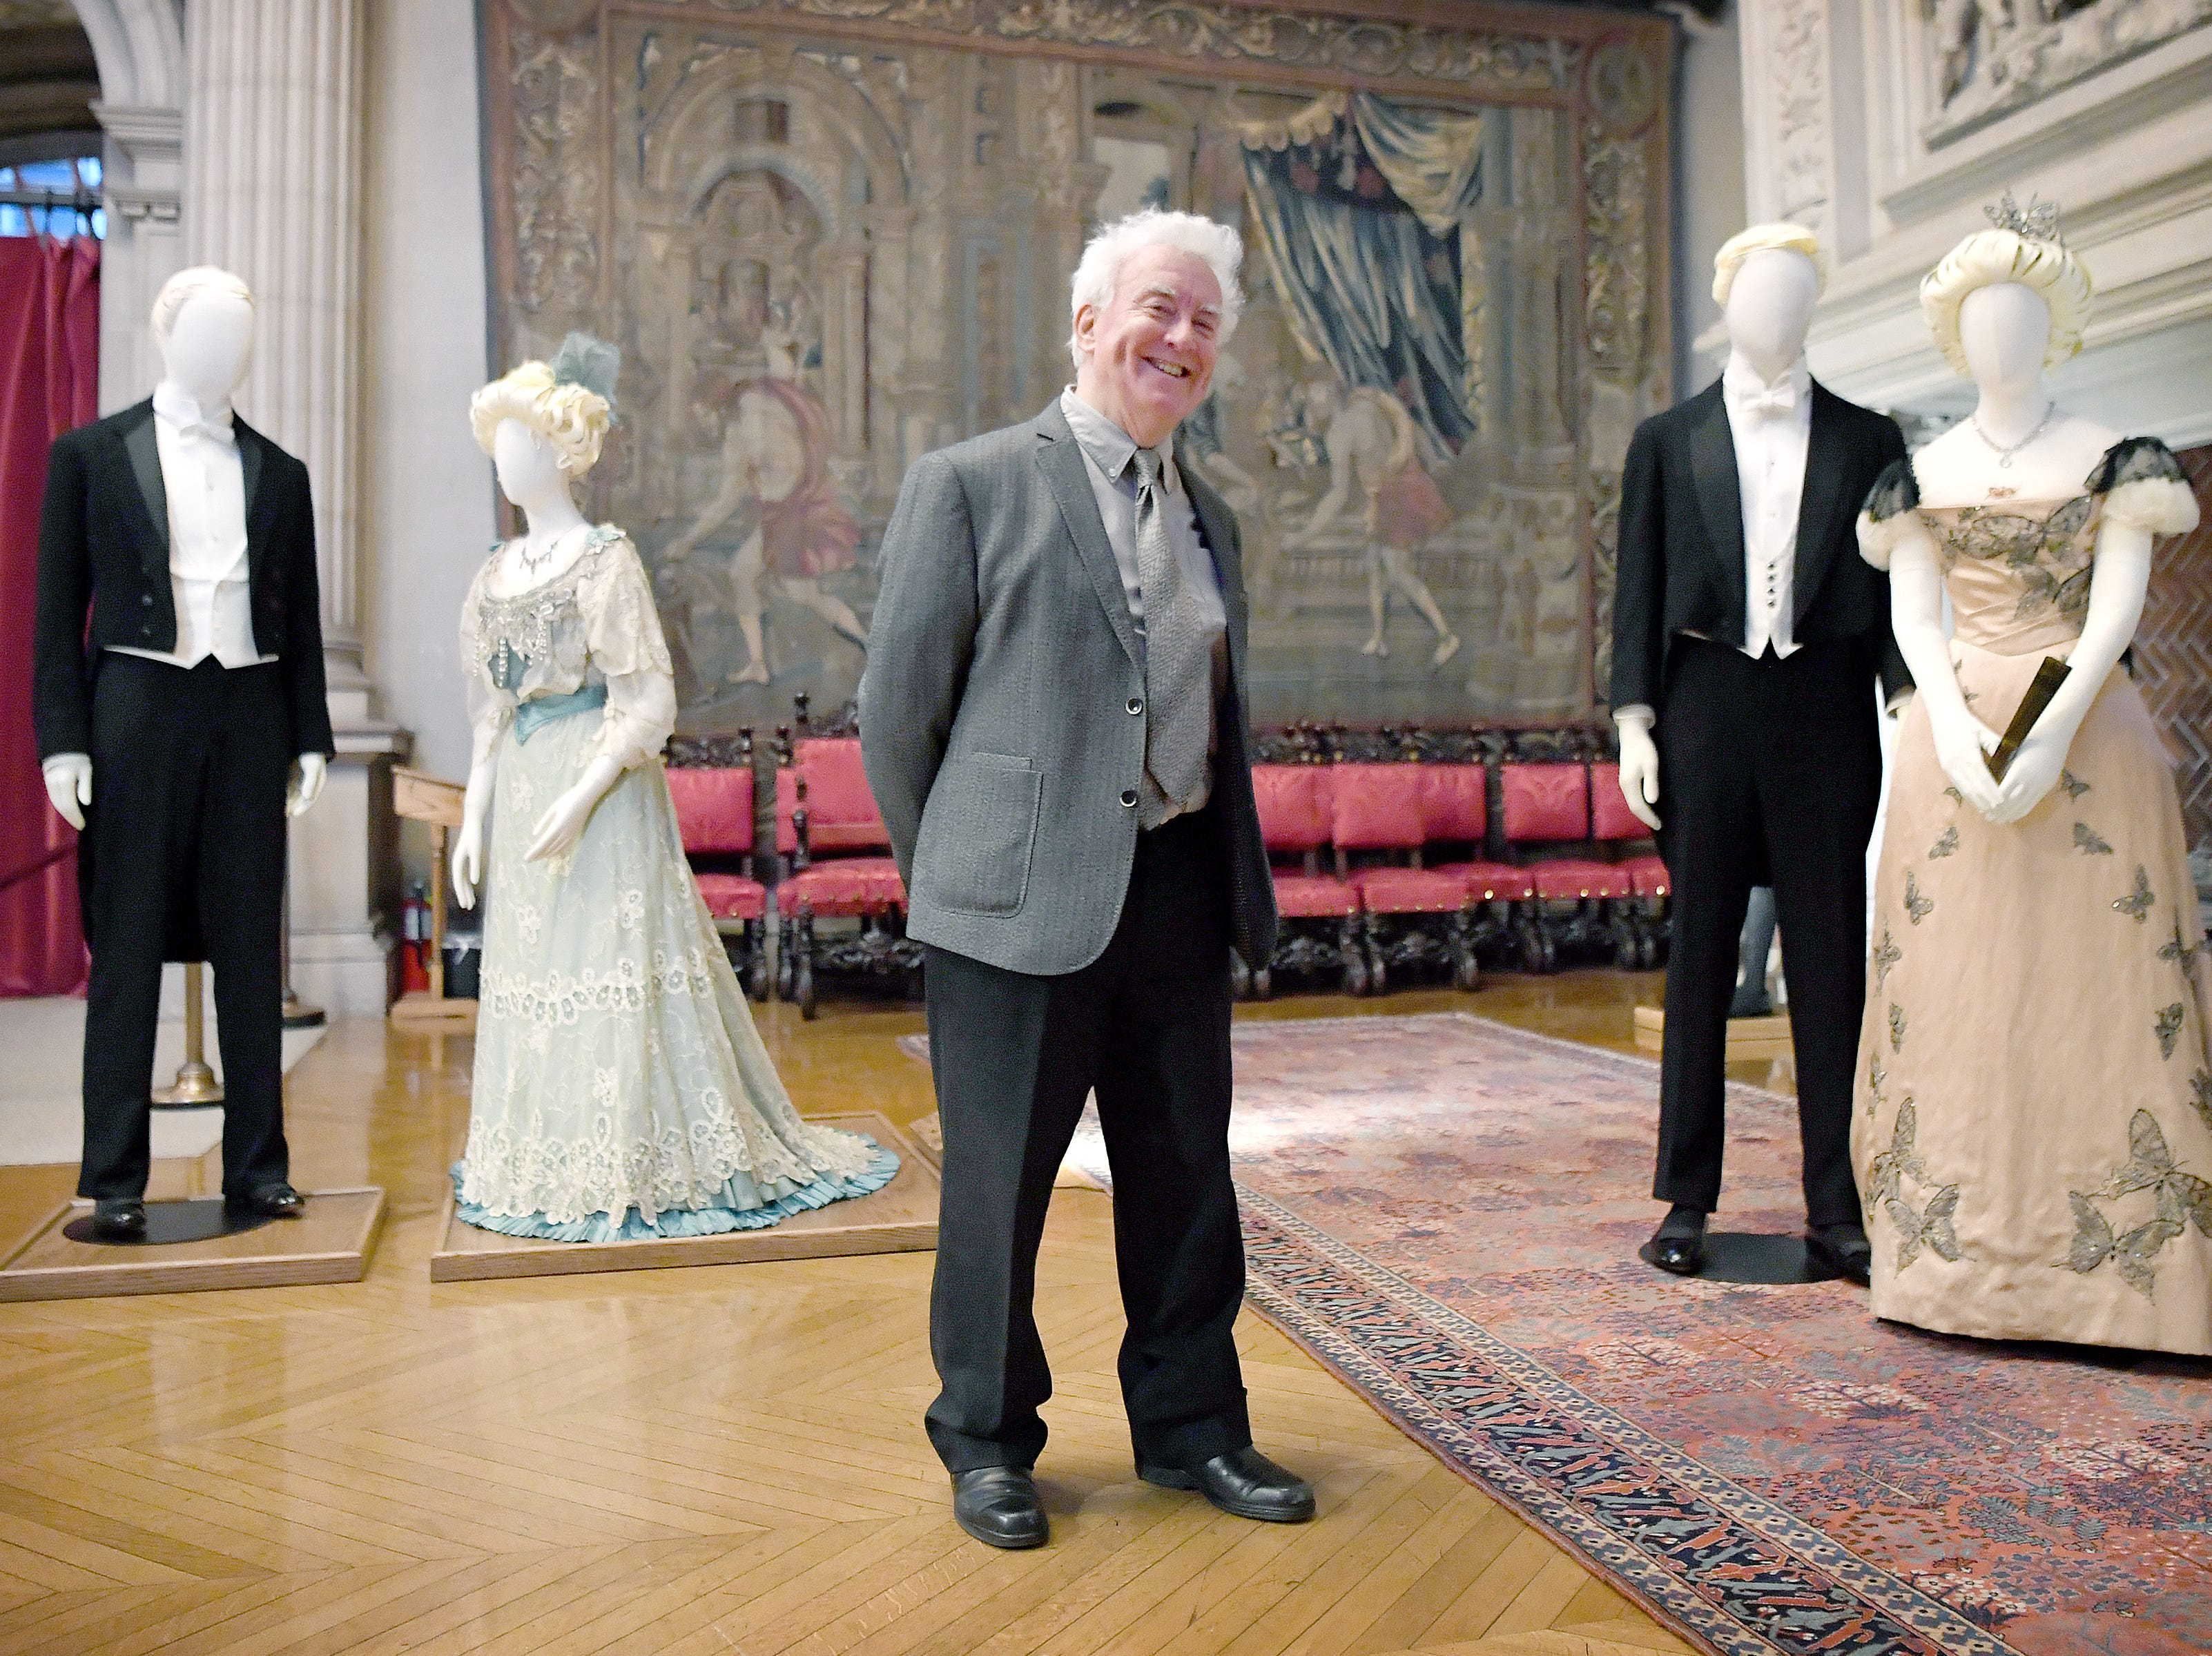 """John Bright, costume designer and owner of Cosprop, London, stands with his creations in the banquet hall of the Biltmore House during a media preview of """"A Vanderbilt House Party, the Gilded Age,"""" on Feb. 7, 2019. Bright and his team designed the clothing displayed in the house from historical photographs of the Vanderbilts and their house guests."""